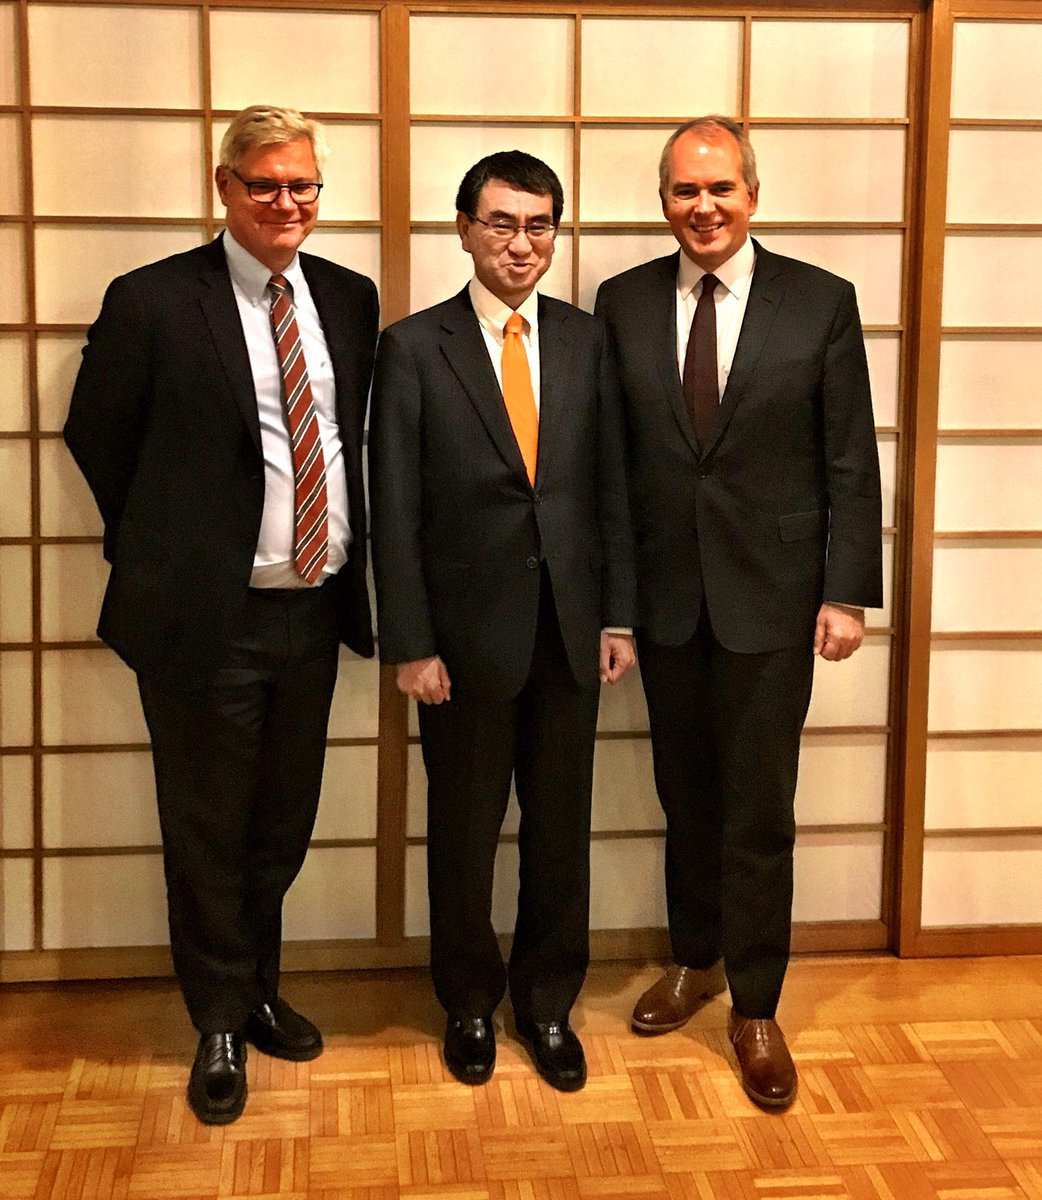 A big thx to Defence Minister @konotarogomame for an enlightening dinner discussion wth me & our new @dkClimateAmb https://t.co/ywqGK2cNjE